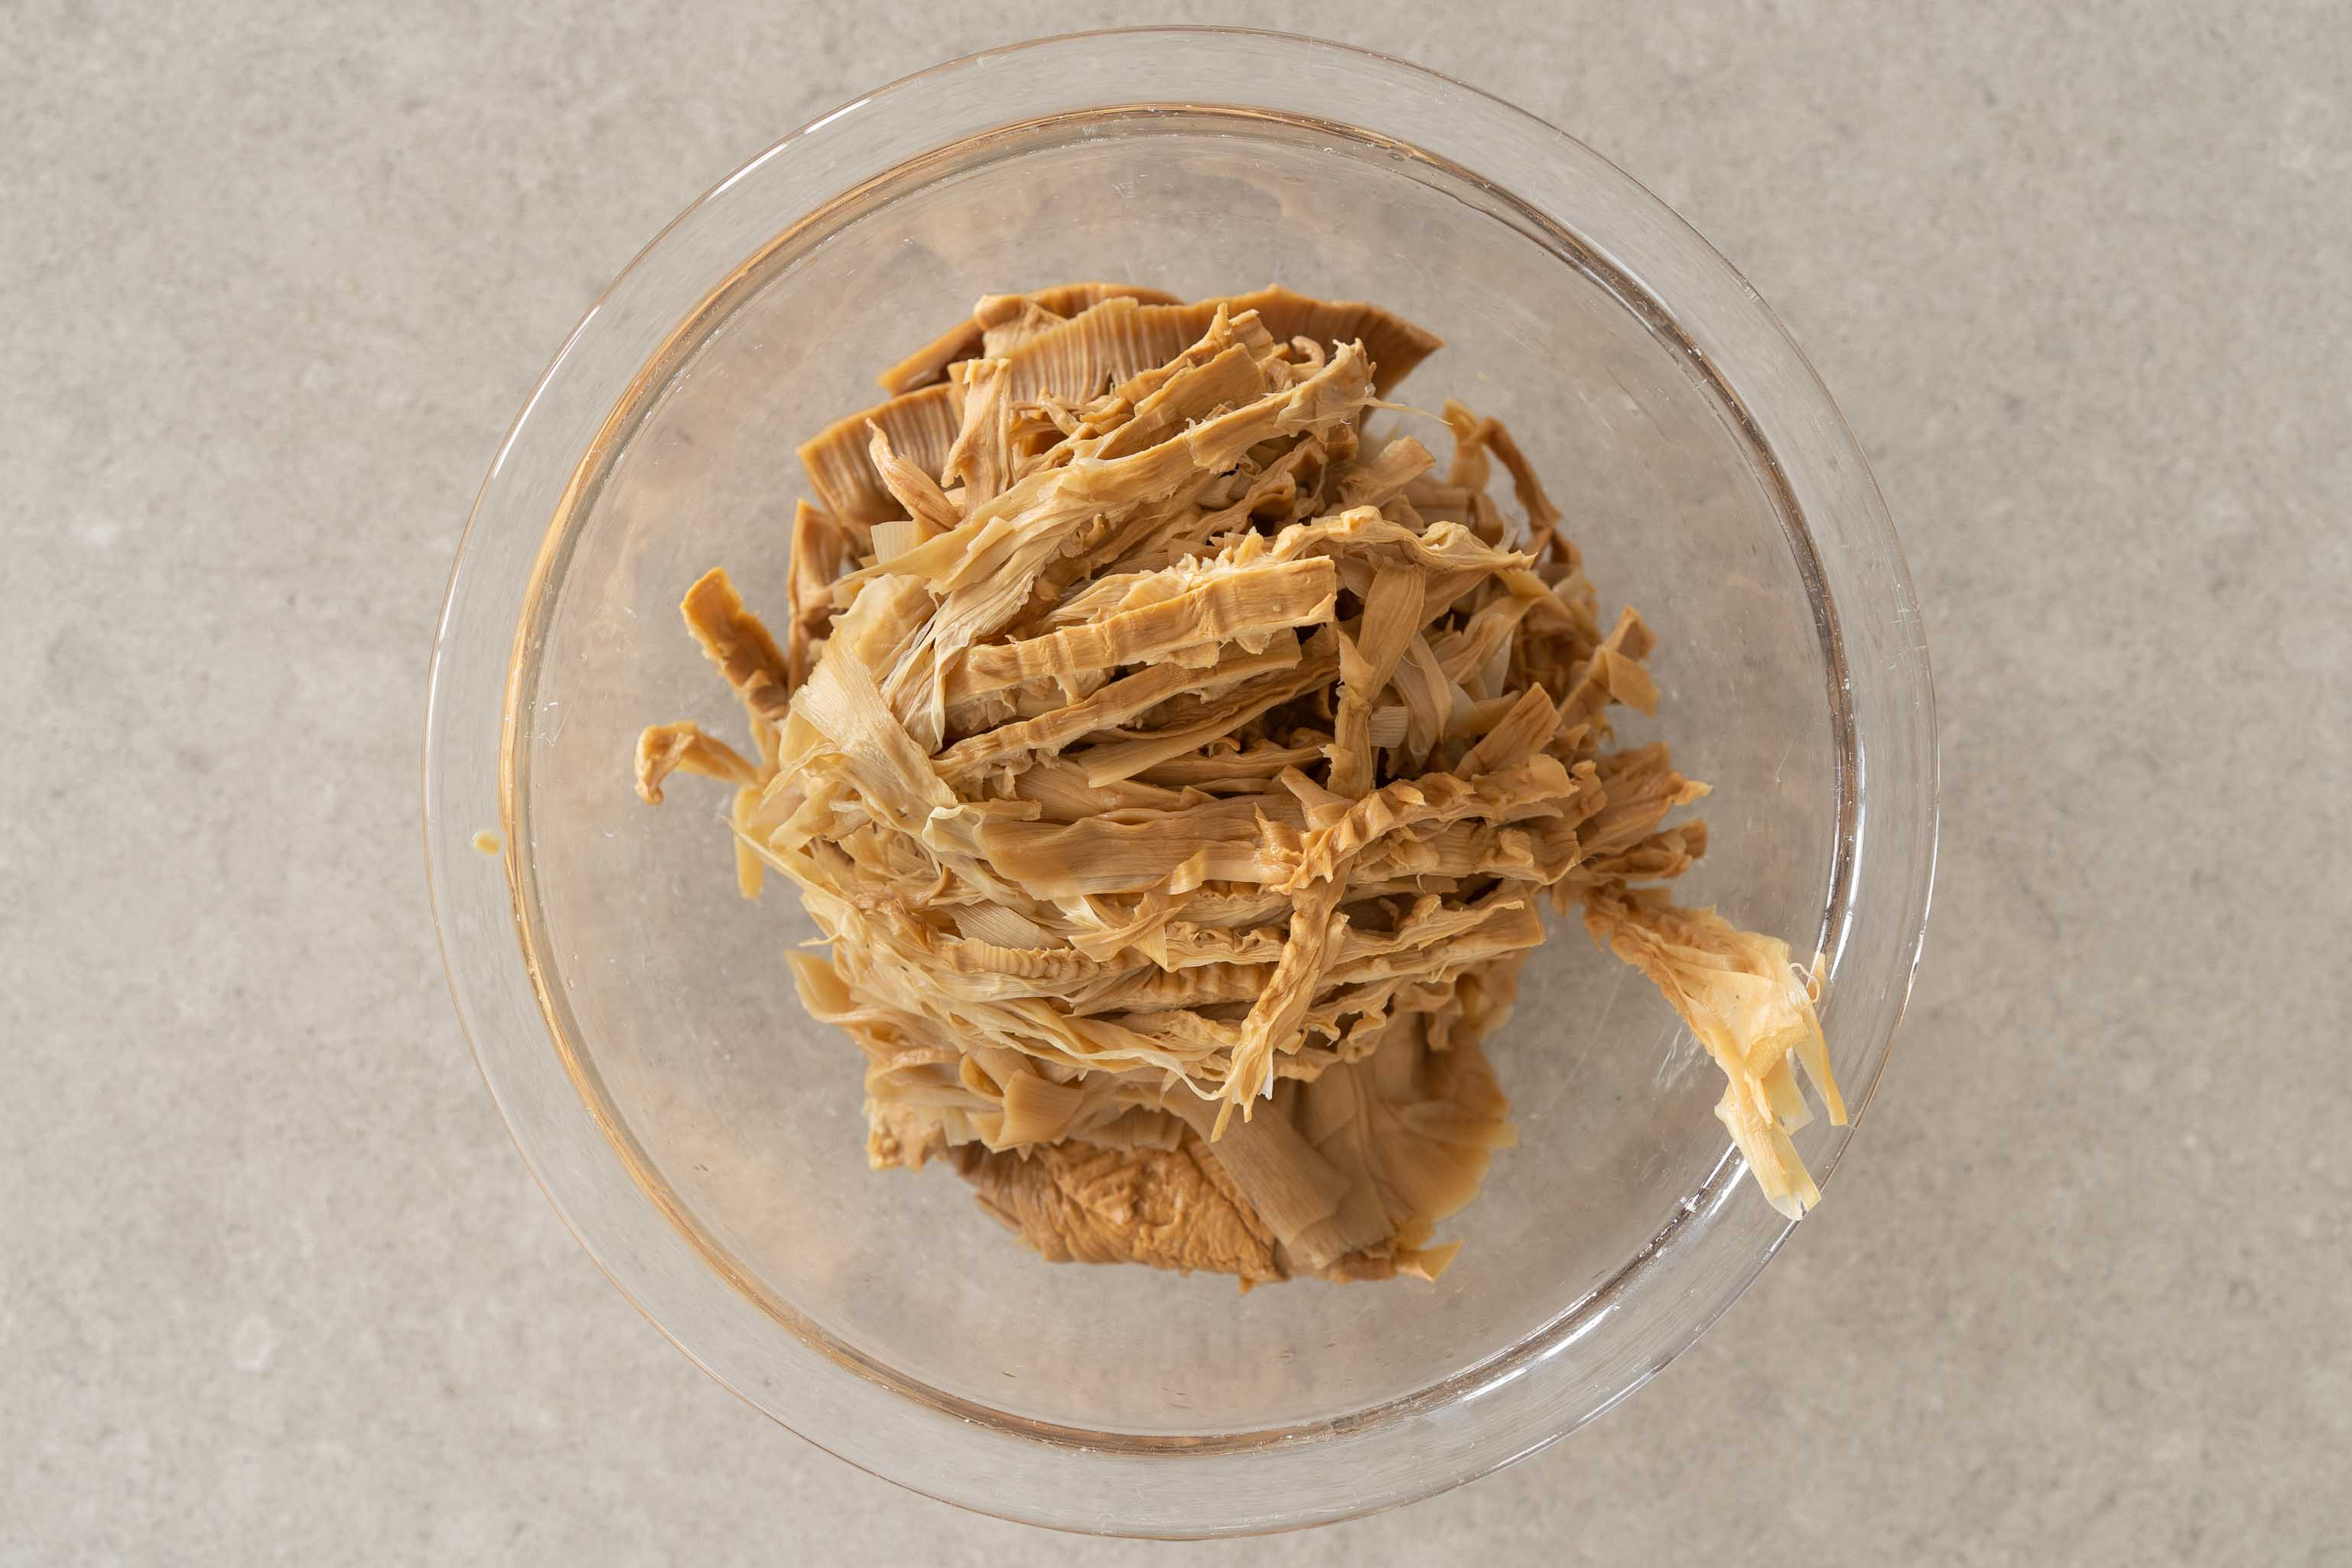 a bowl of shredded soaked bamboo shoots